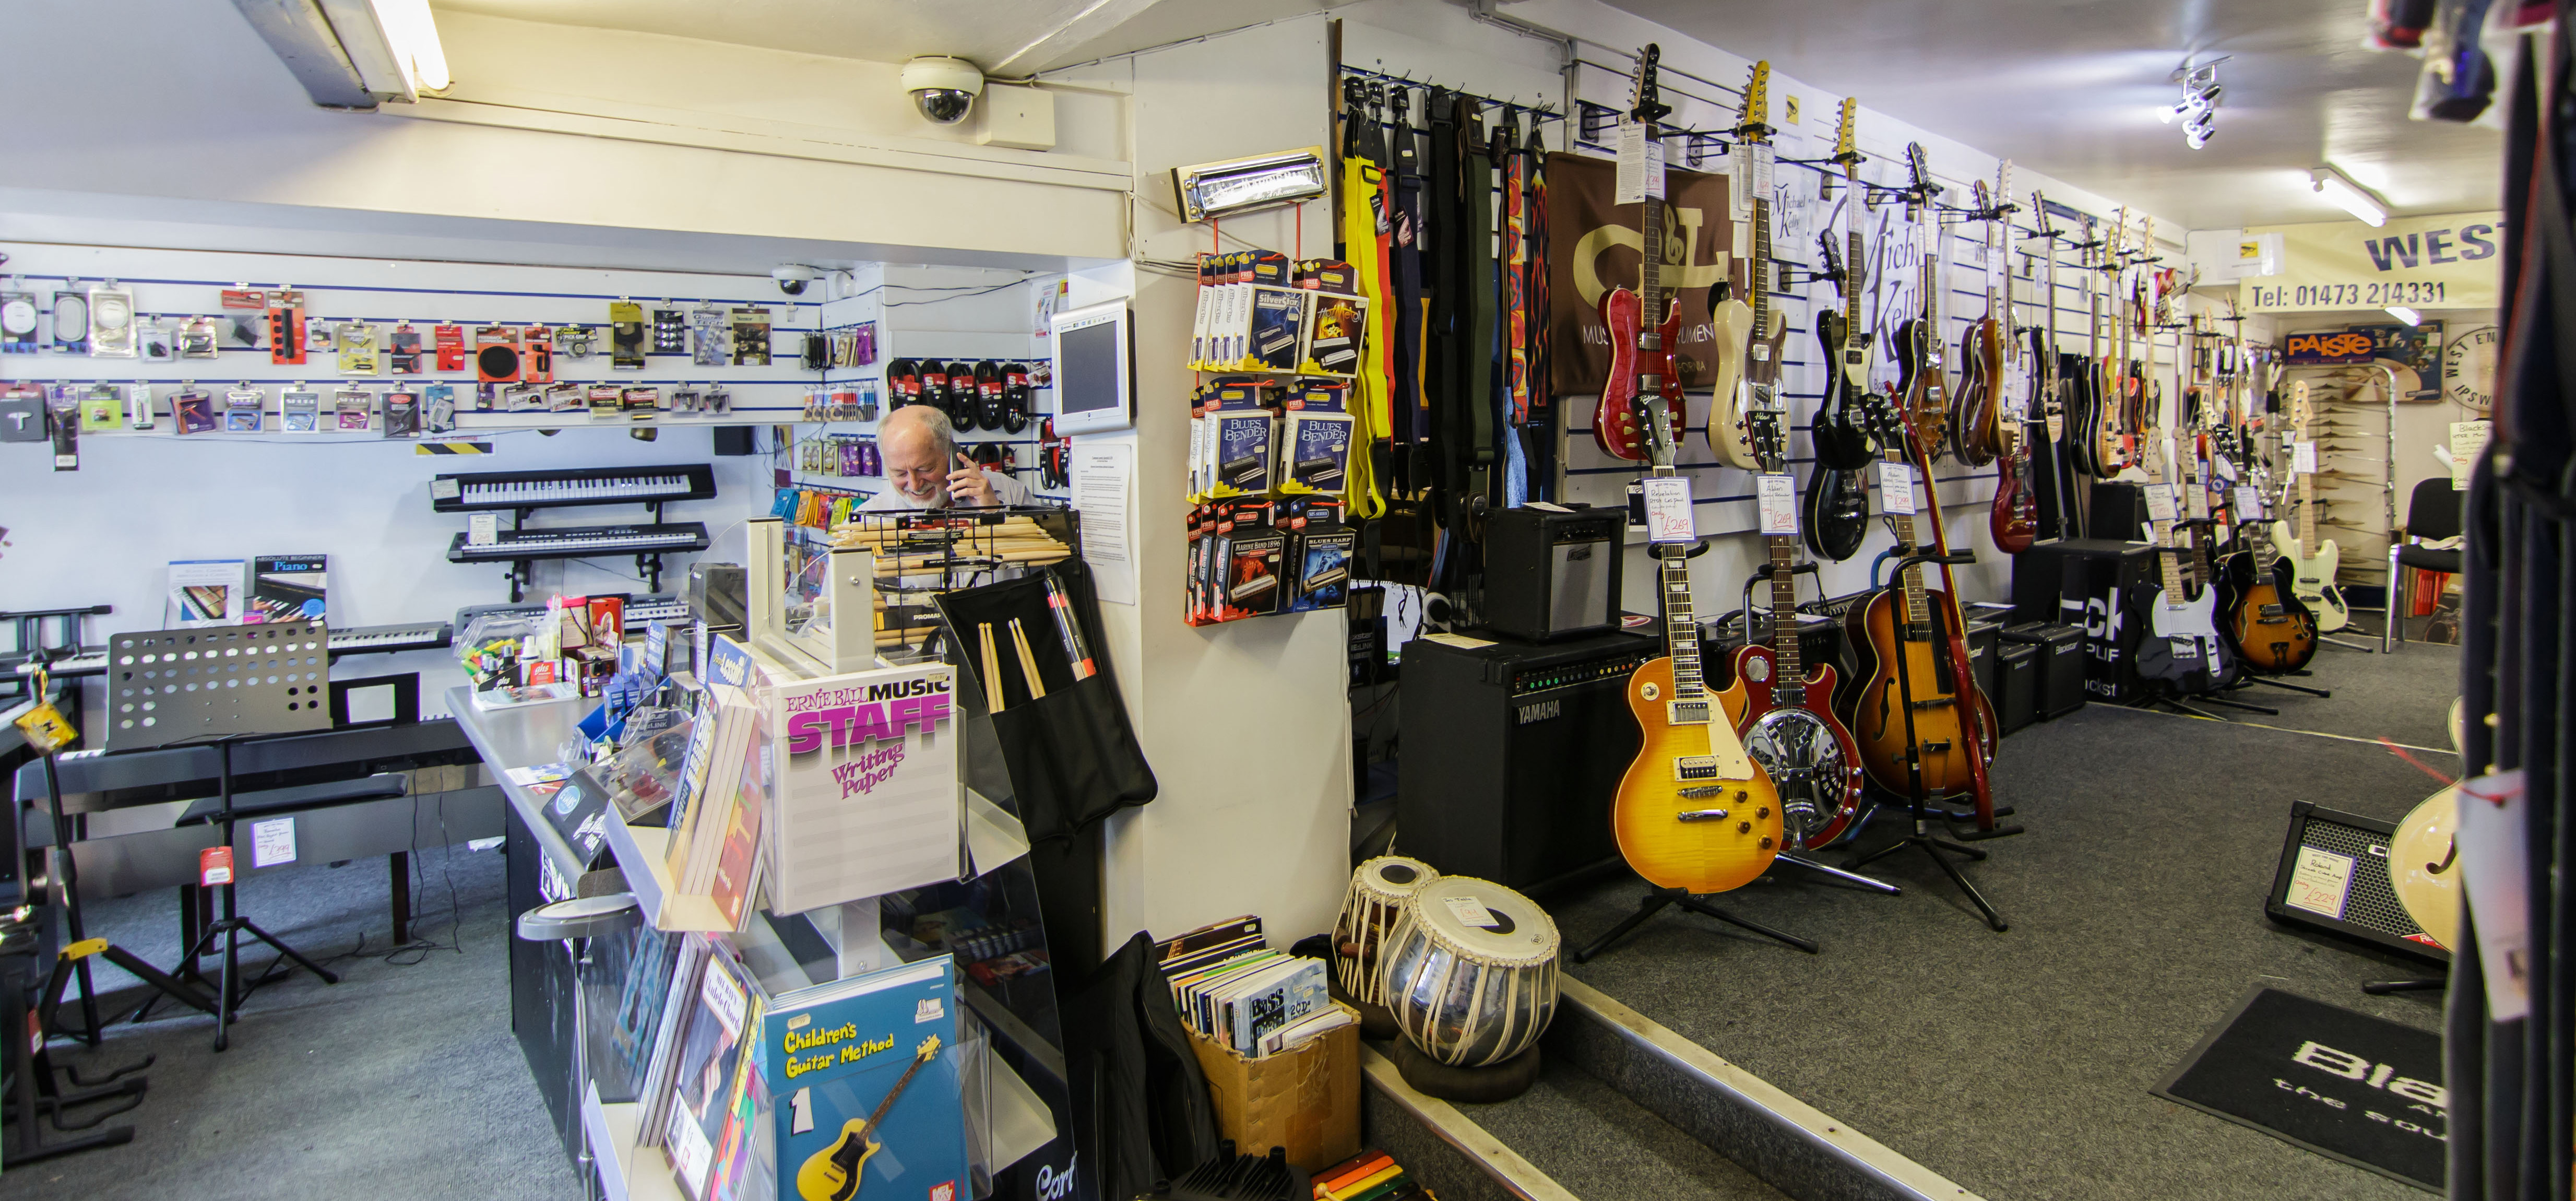 West End Music store has guitar accessories, straps, amps, music books, and more